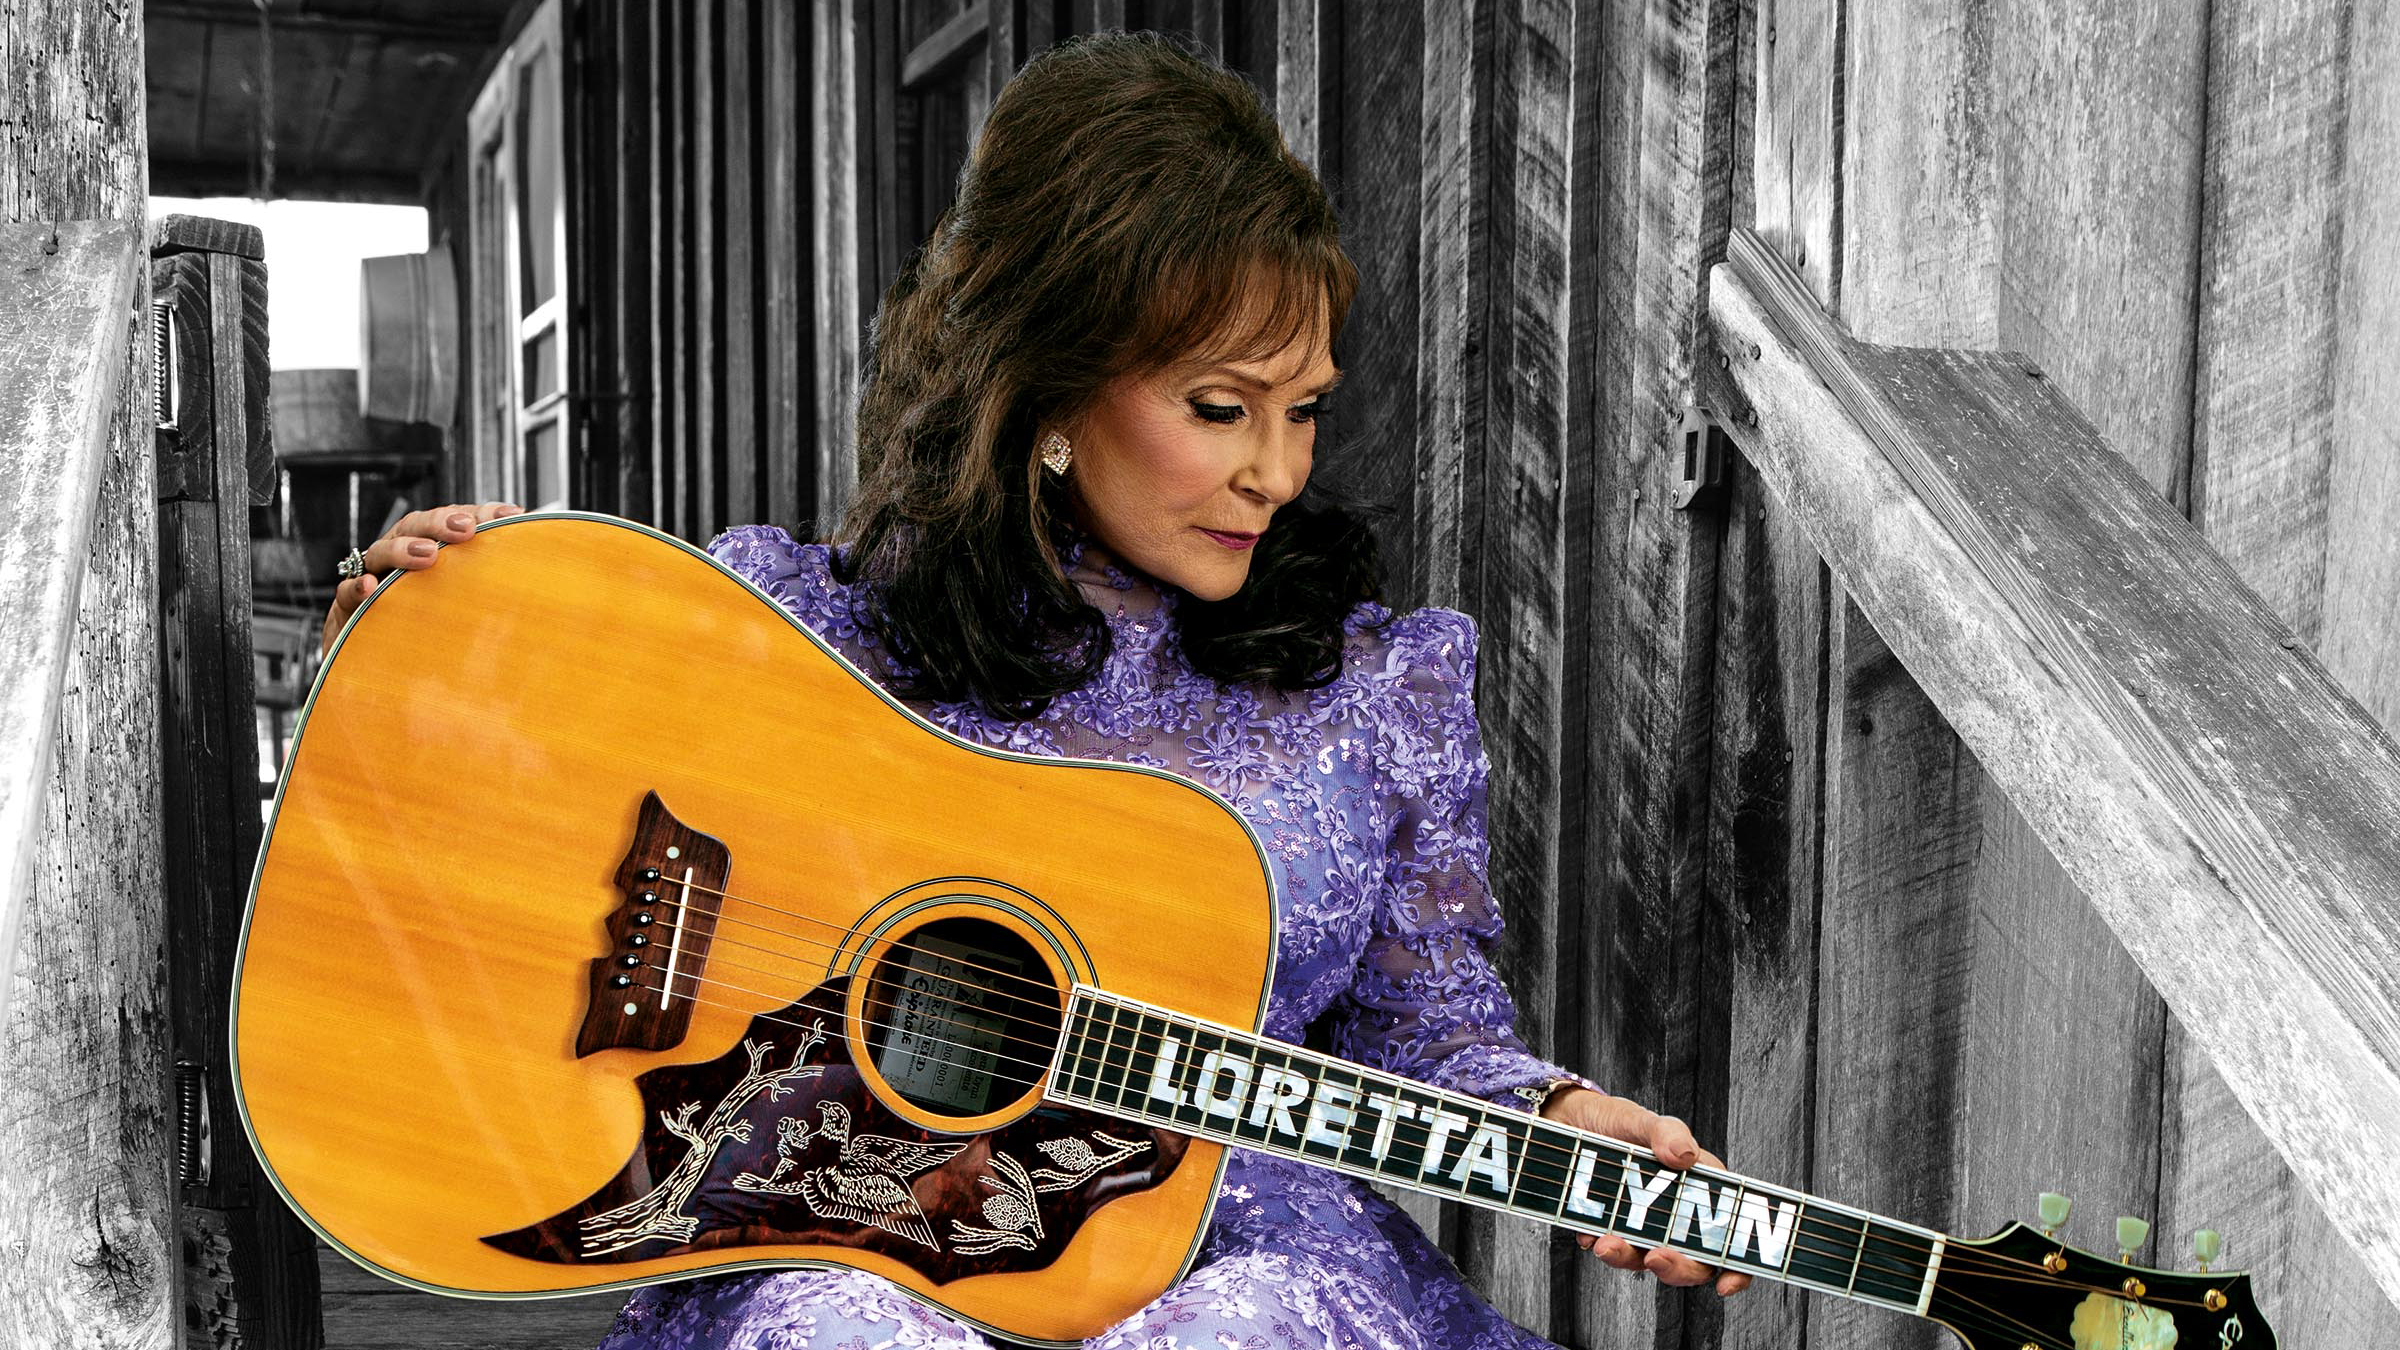 loretta lynn and crystal gayleloretta lynn when the tingle becomes a chill, loretta lynn when the tingle becomes a chill lyrics, loretta lynn & jack white, loretta lynn amazing grace, loretta lynn songs, loretta lynn and crystal gayle, loretta lynn 2016, loretta lynn conway twitty, loretta lynn happy birthday, loretta lynn the very best of, loretta lynn marriage, loretta lynn band, loretta lynn you've just stepped in, loretta lynn i fall to pieces, loretta lynn coal miner's daughter, loretta lynn portland, loretta lynn your squaw is on the warpath, loretta lynn discography, loretta lynn biography, loretta lynn you're lookin at country